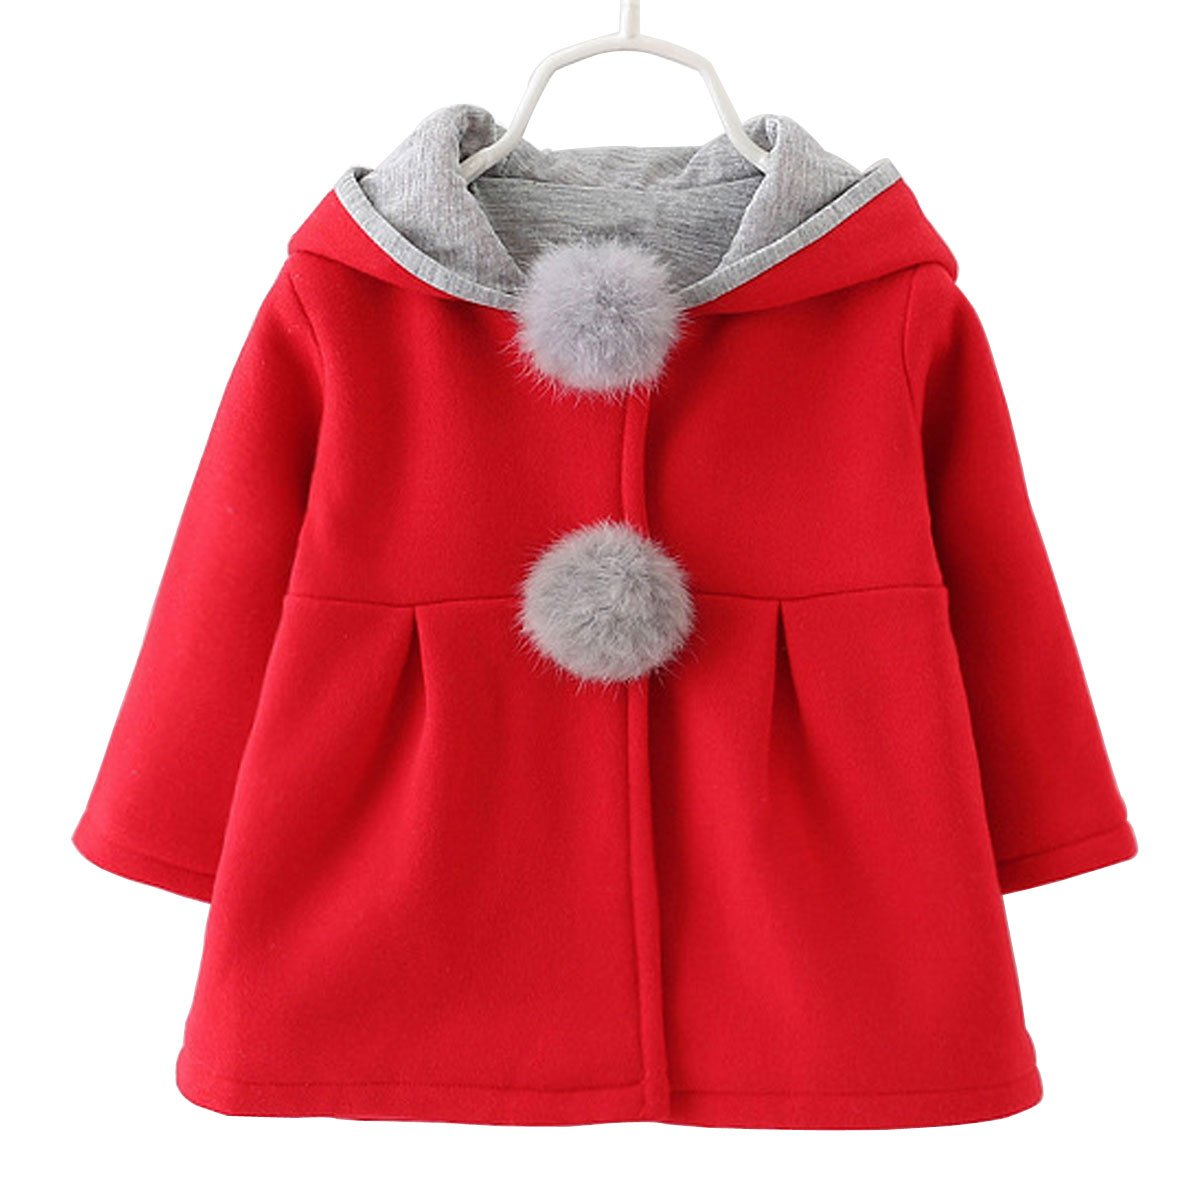 2017 Baby Girls Toddler Kids Winter Big Ears Hoodie Jackets Outerwear Coats